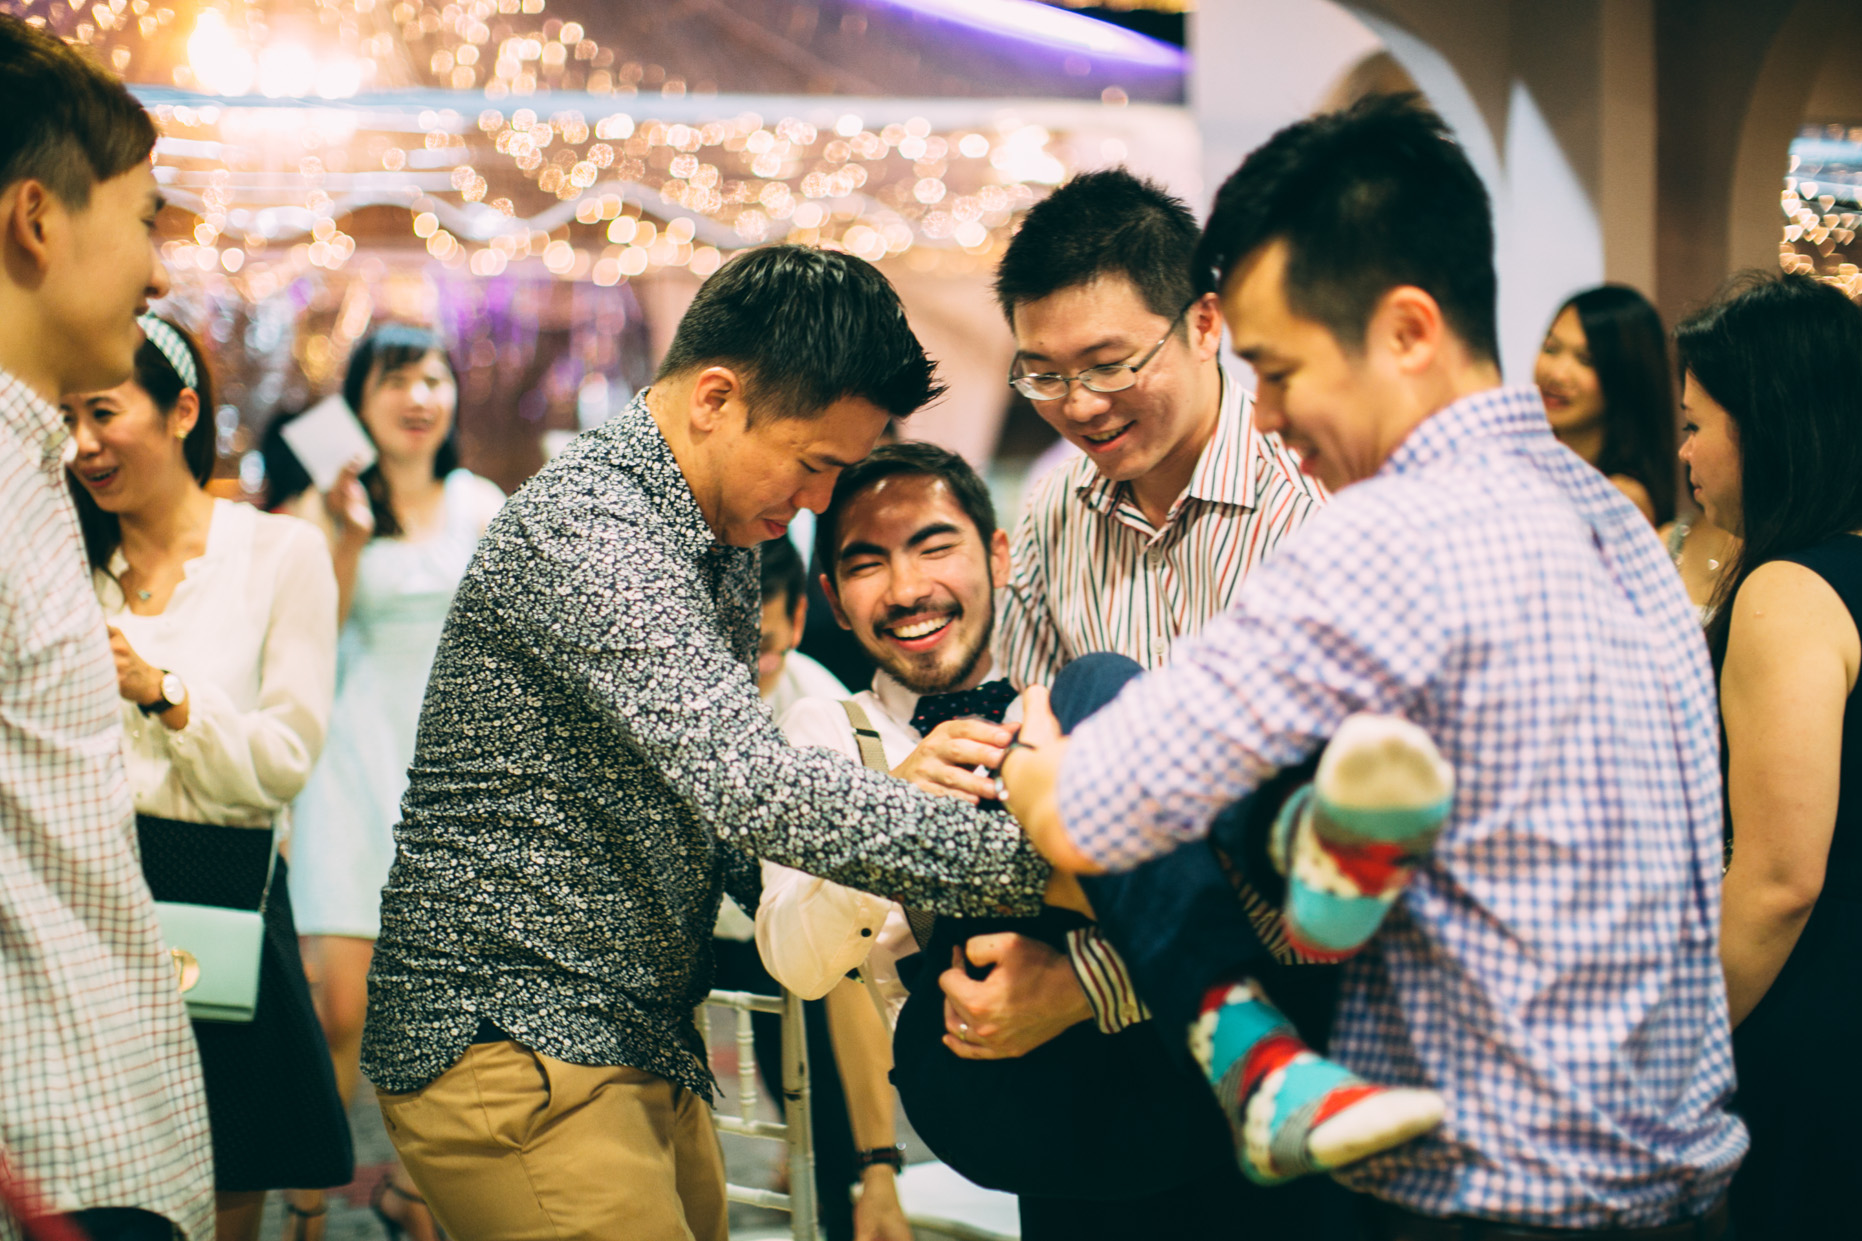 108-hellojanelee-sam grace-malaysia-wedding-day